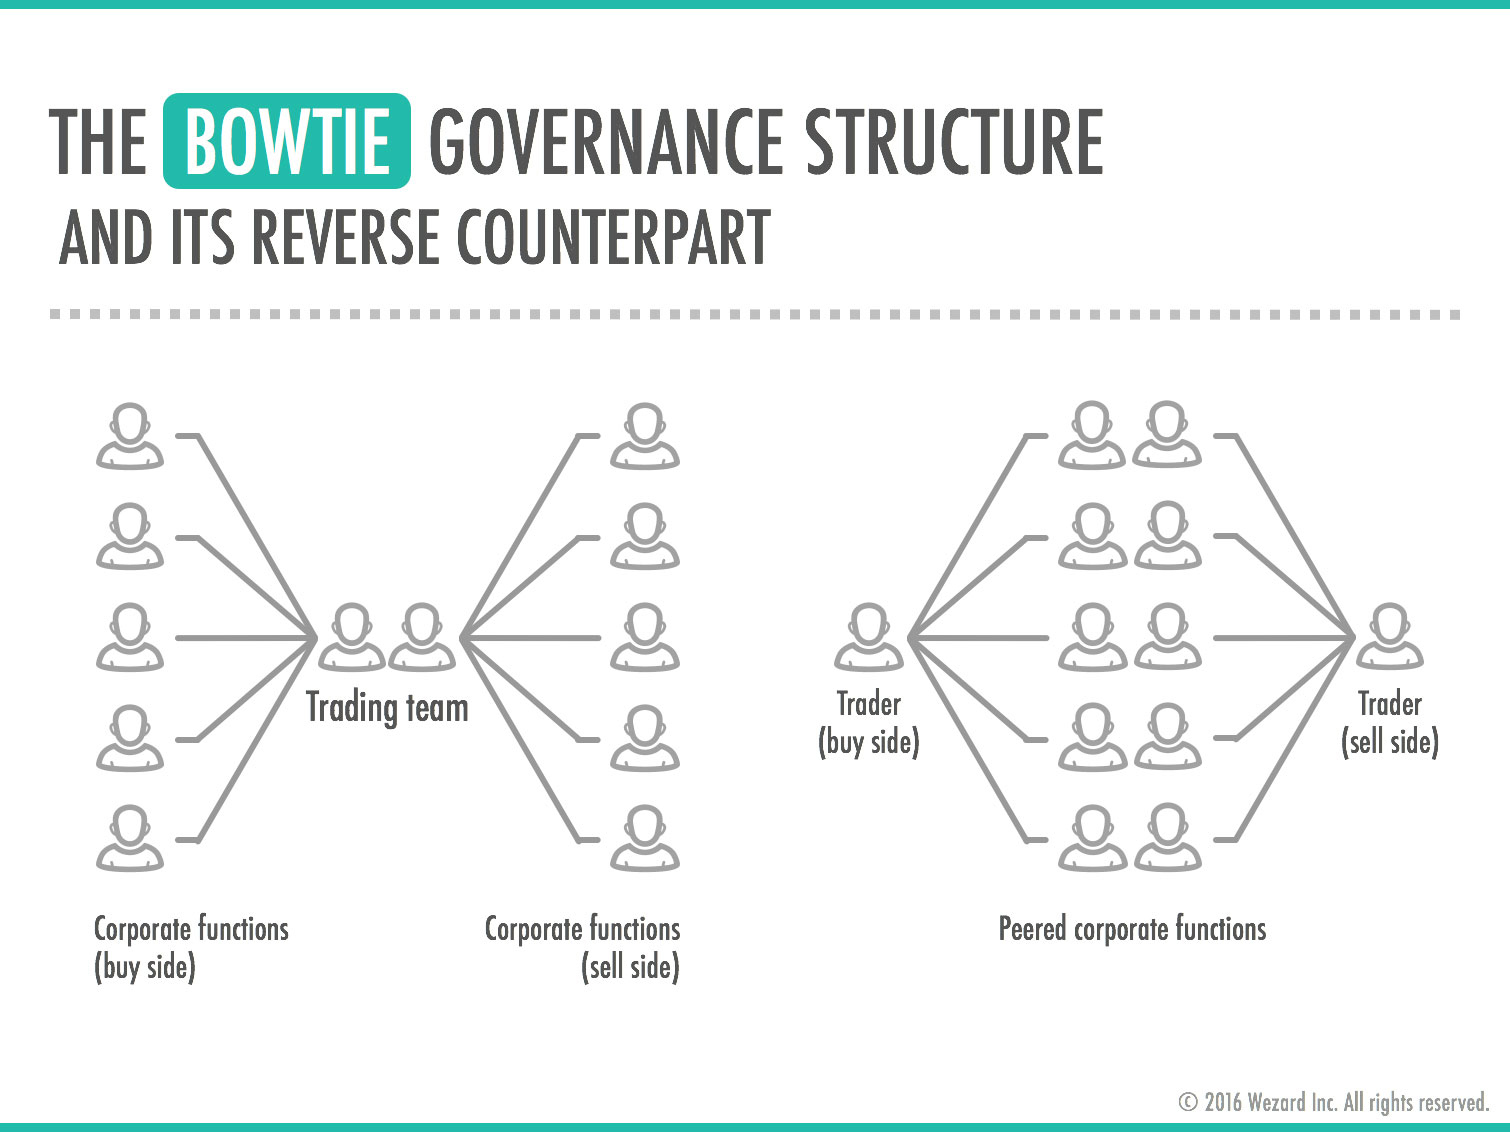 Wezard - The bowtie governance structure and its reverse counterpart